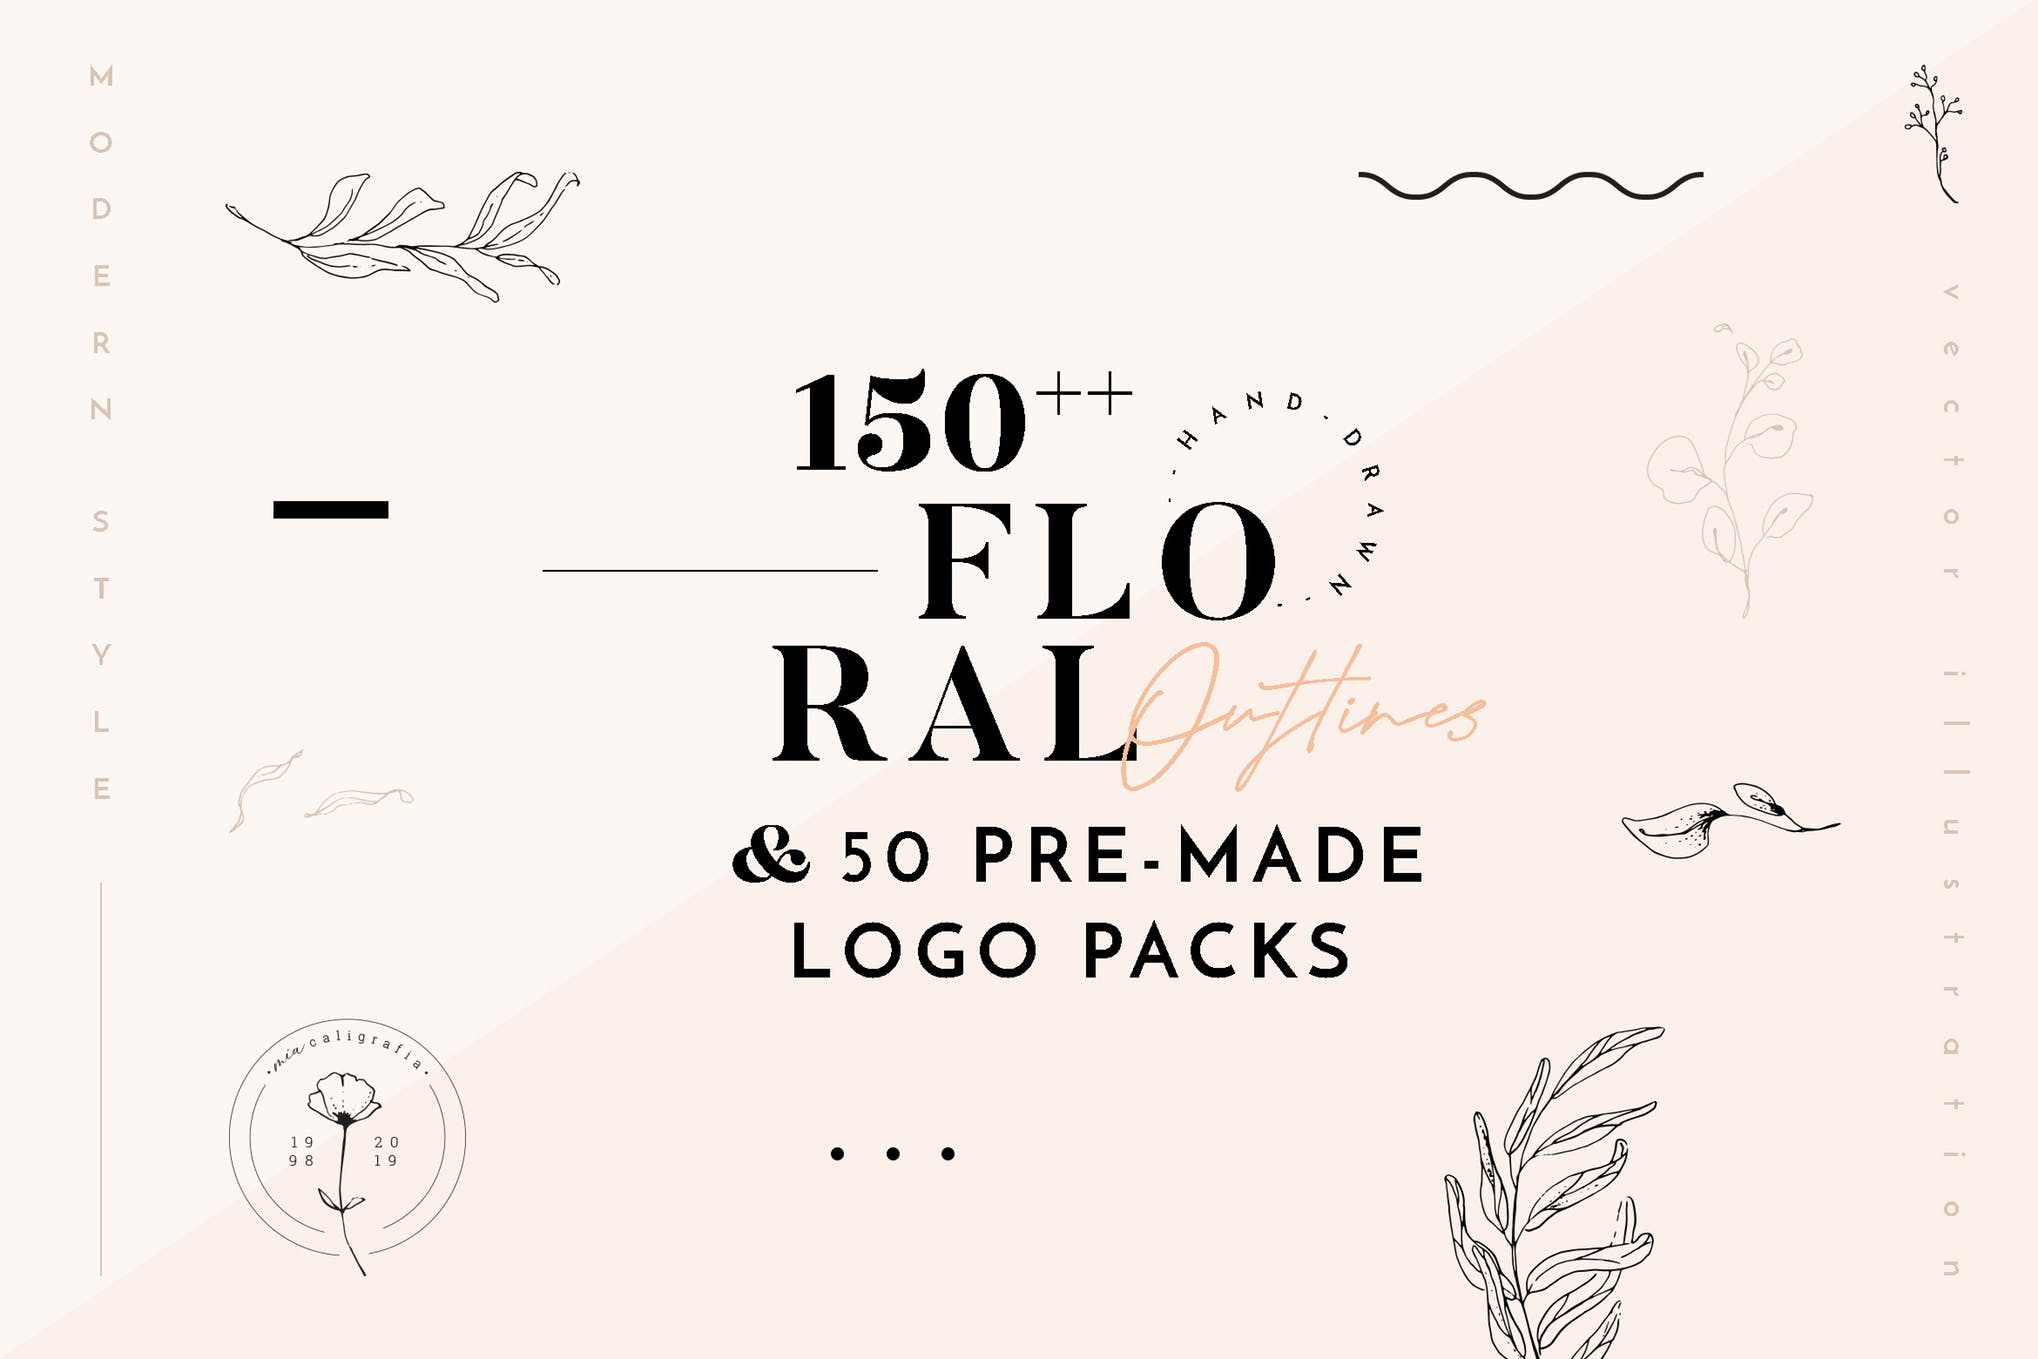 150 Floral Outline Illustration & Logo Pack with FULL rights